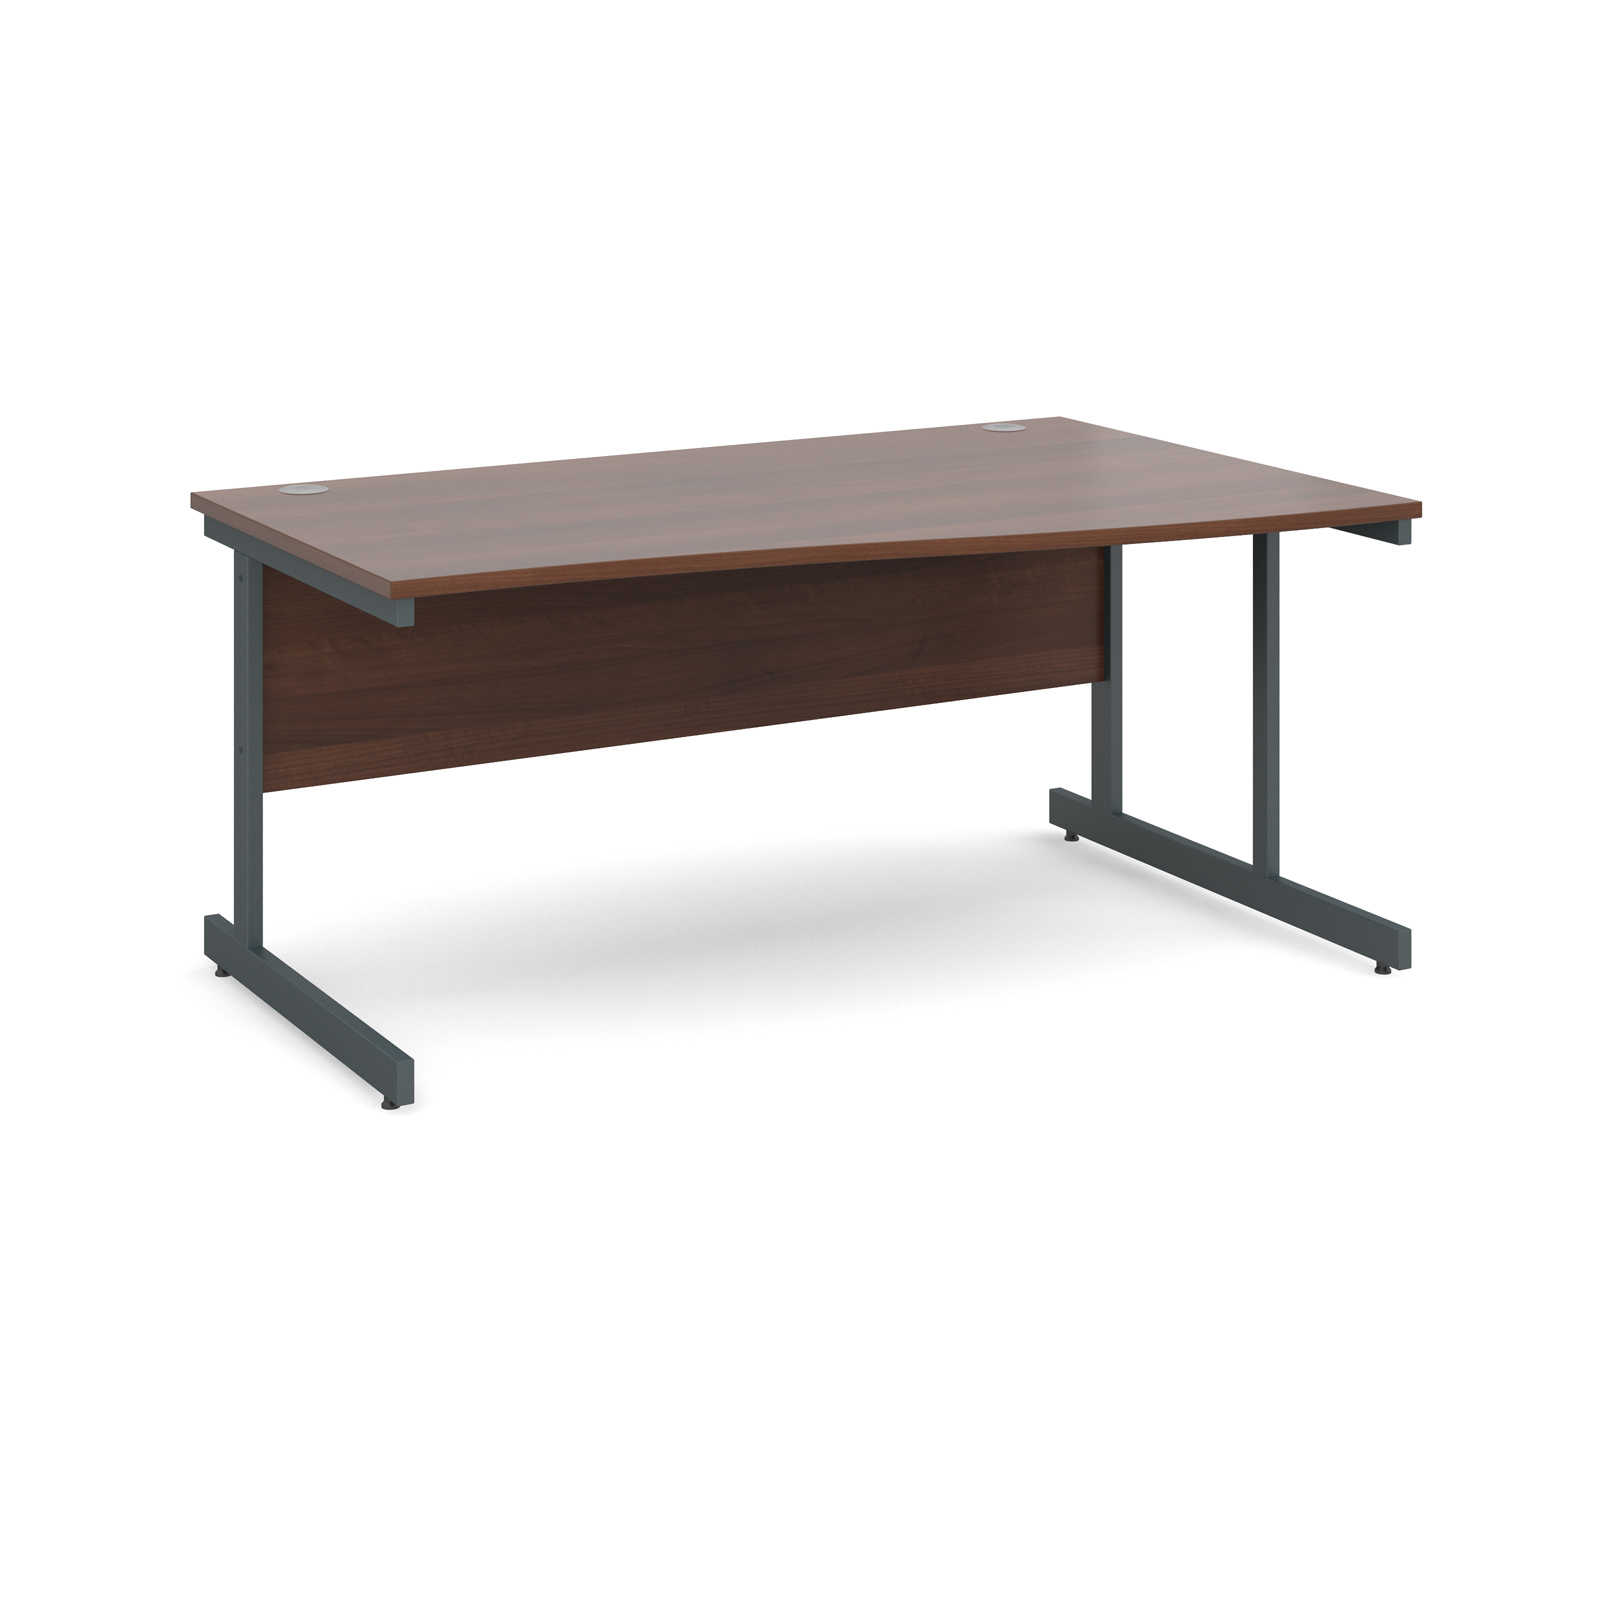 Contract 25 right hand wave desk 1600mm - graphite cantilever frame, walnut top